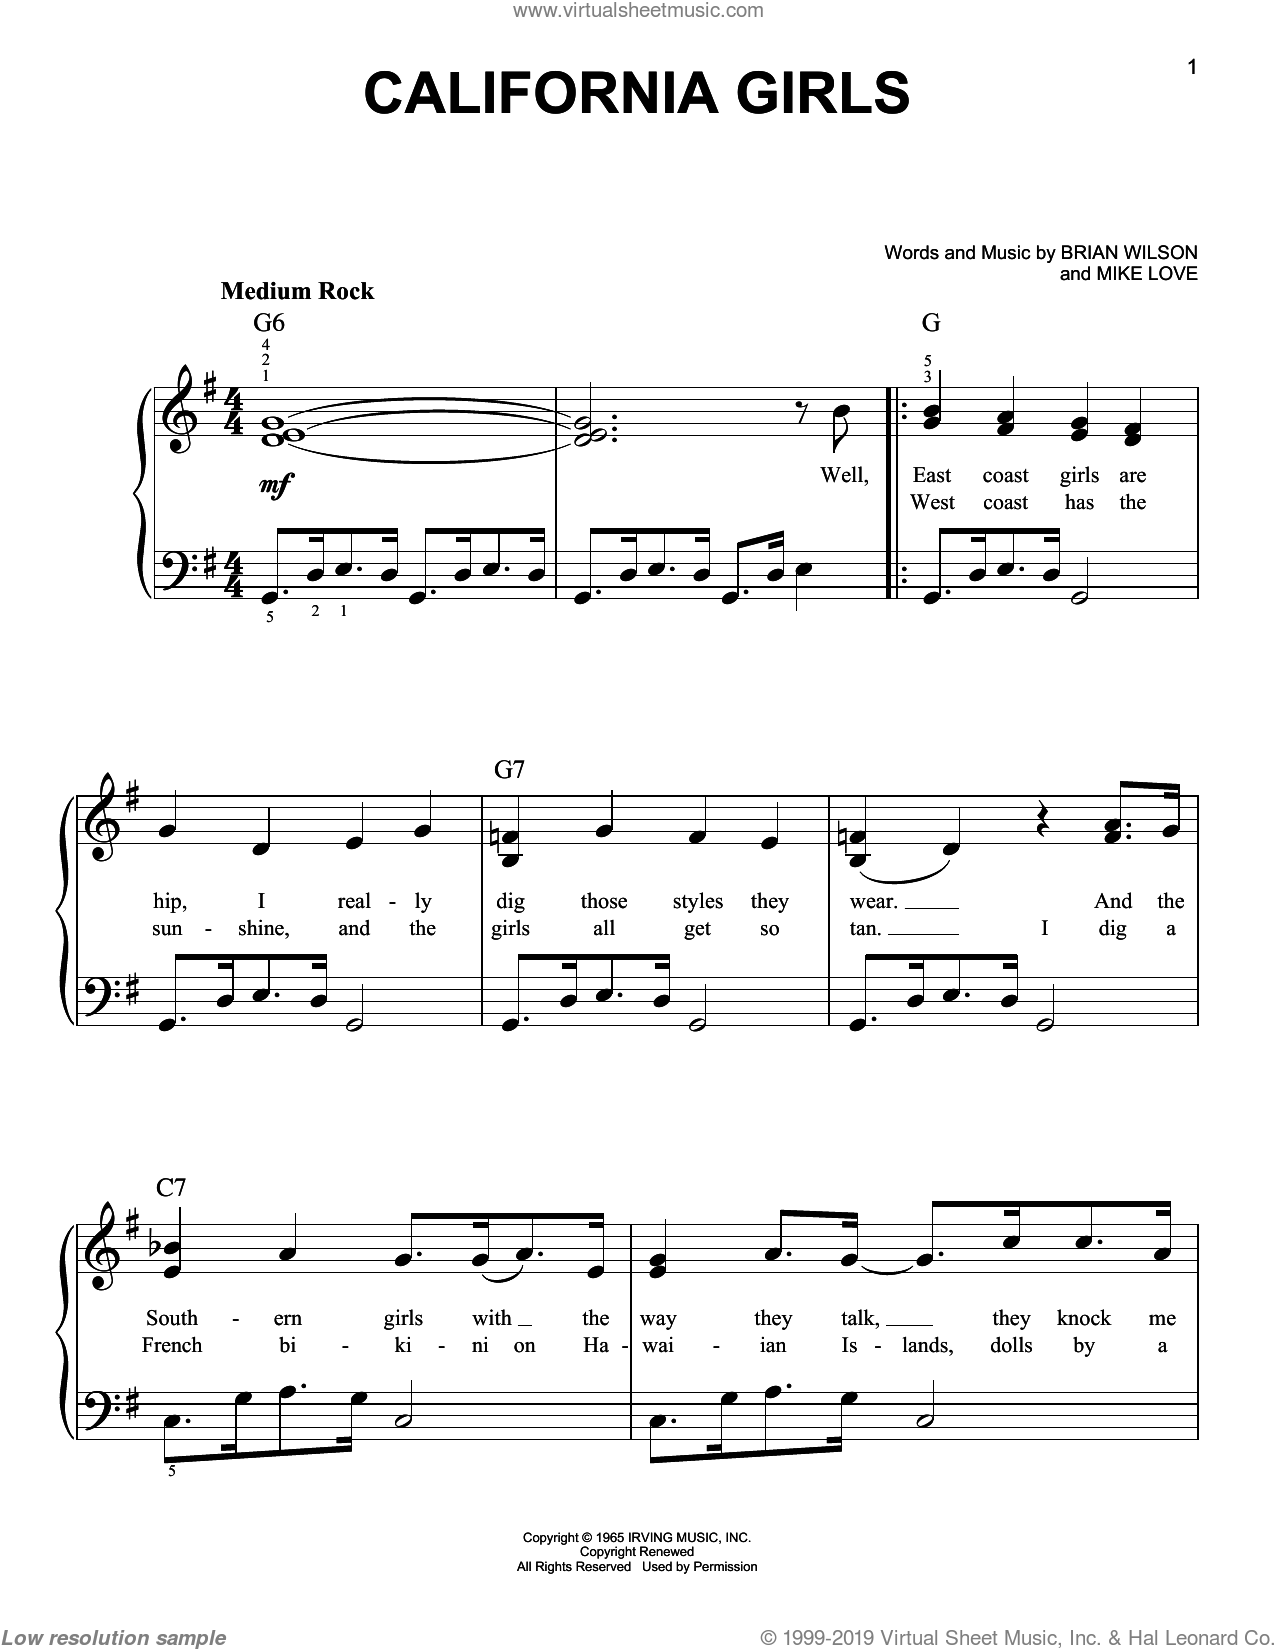 California Girls sheet music for piano solo by David Lee Roth, The Beach Boys, Brian Wilson and Mike Love, easy skill level